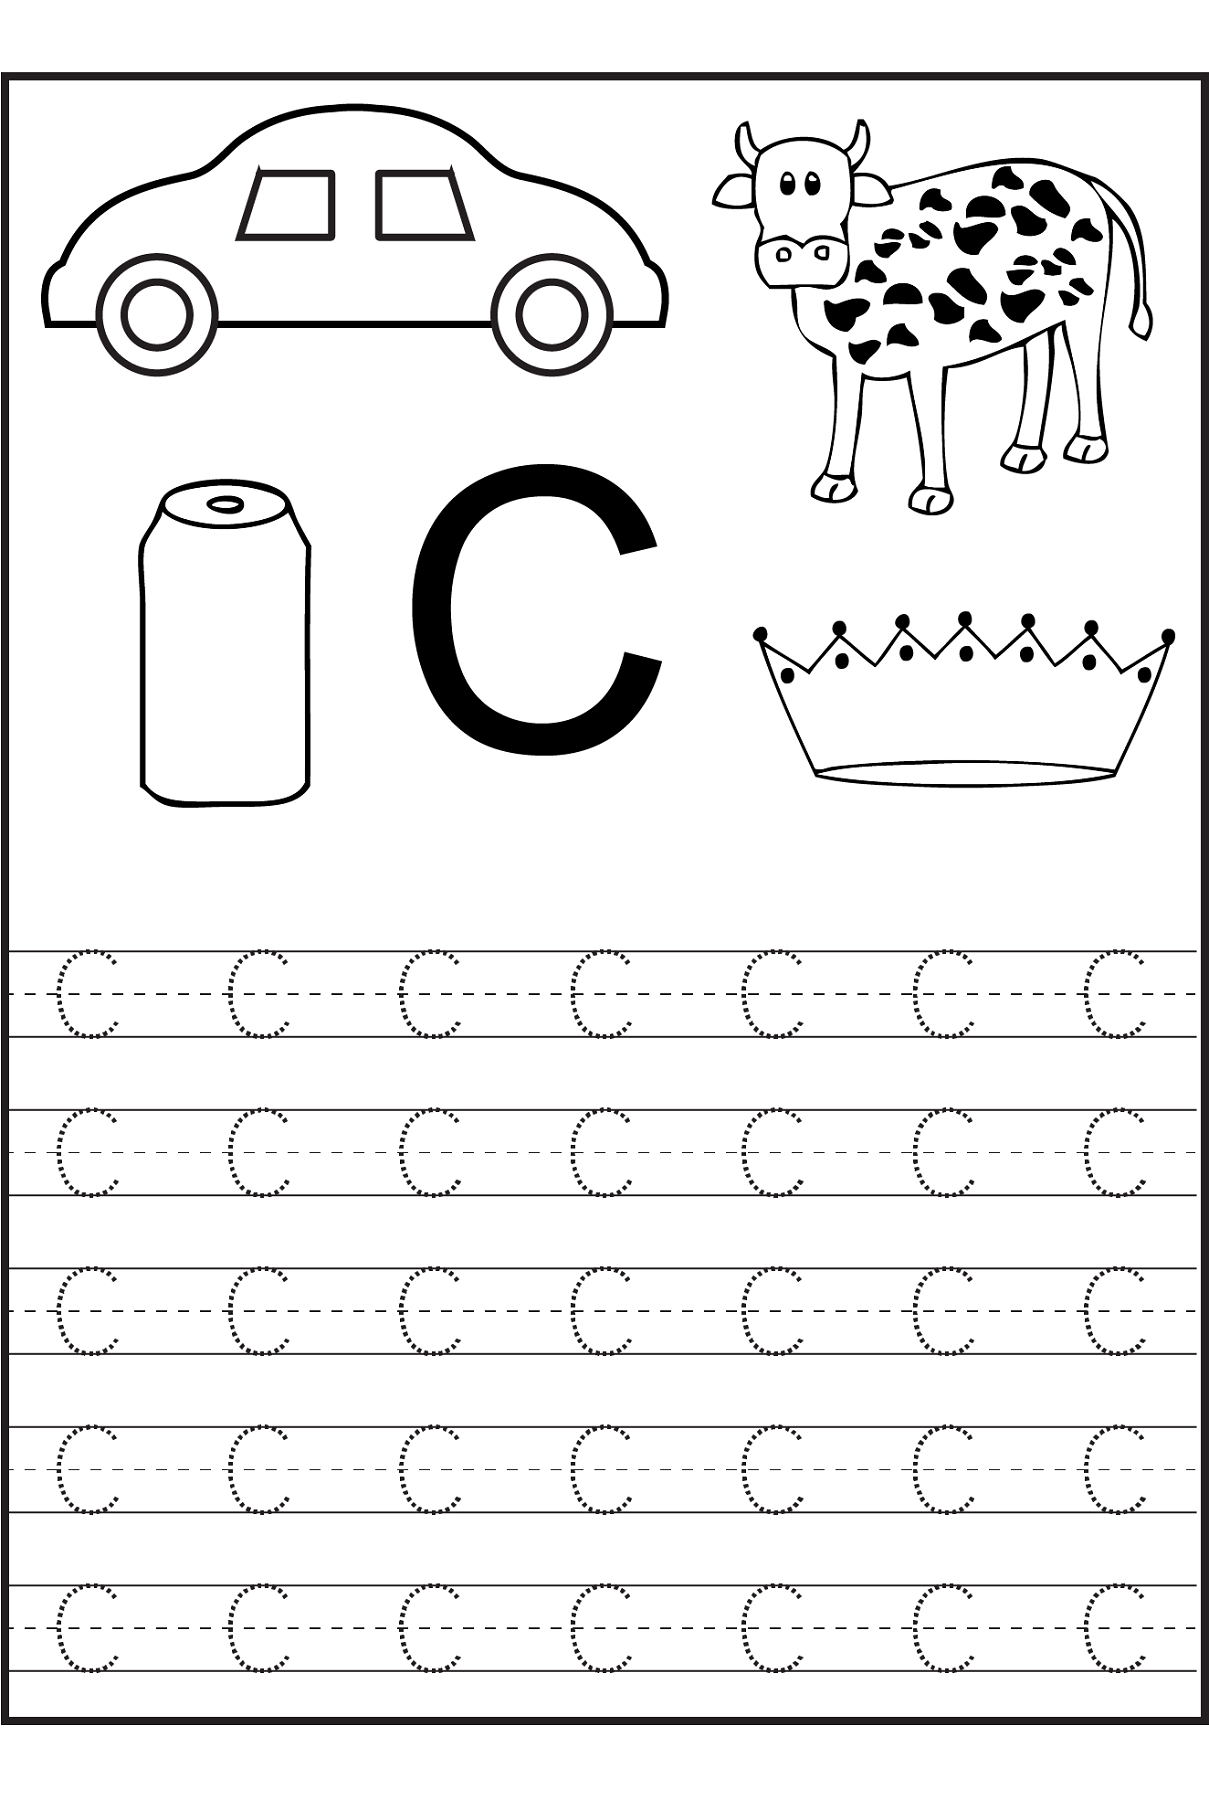 De Four Mation as well Capital Alphabet Letters To Color besides Original also T T Lego Pattern Challenge Cards Ver in addition Cleo Quilt Blue. on pattern block worksheets pdf